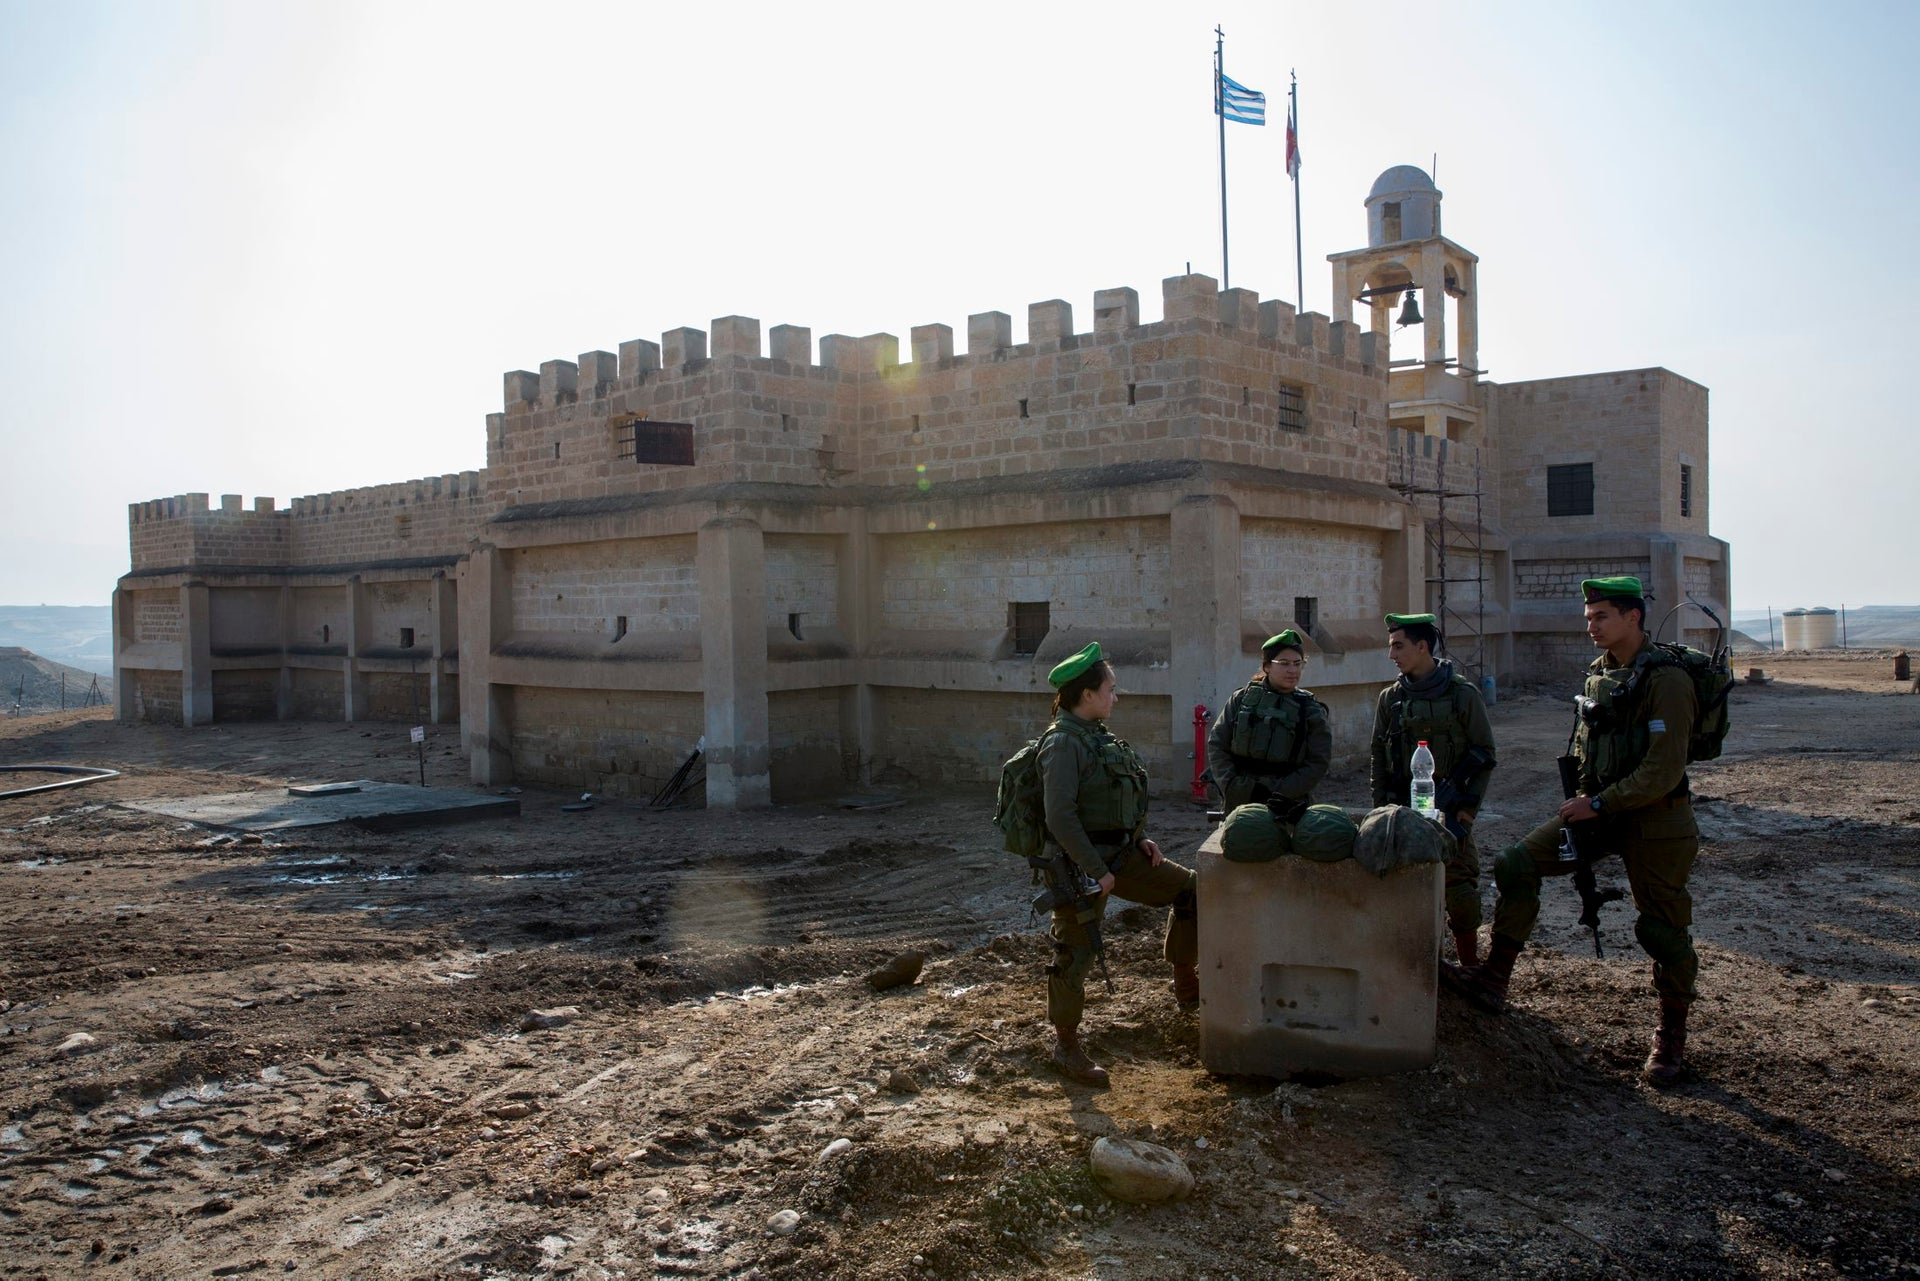 Soldiers at Qasr el-Yahud. A pilgrimage site and a minefield.